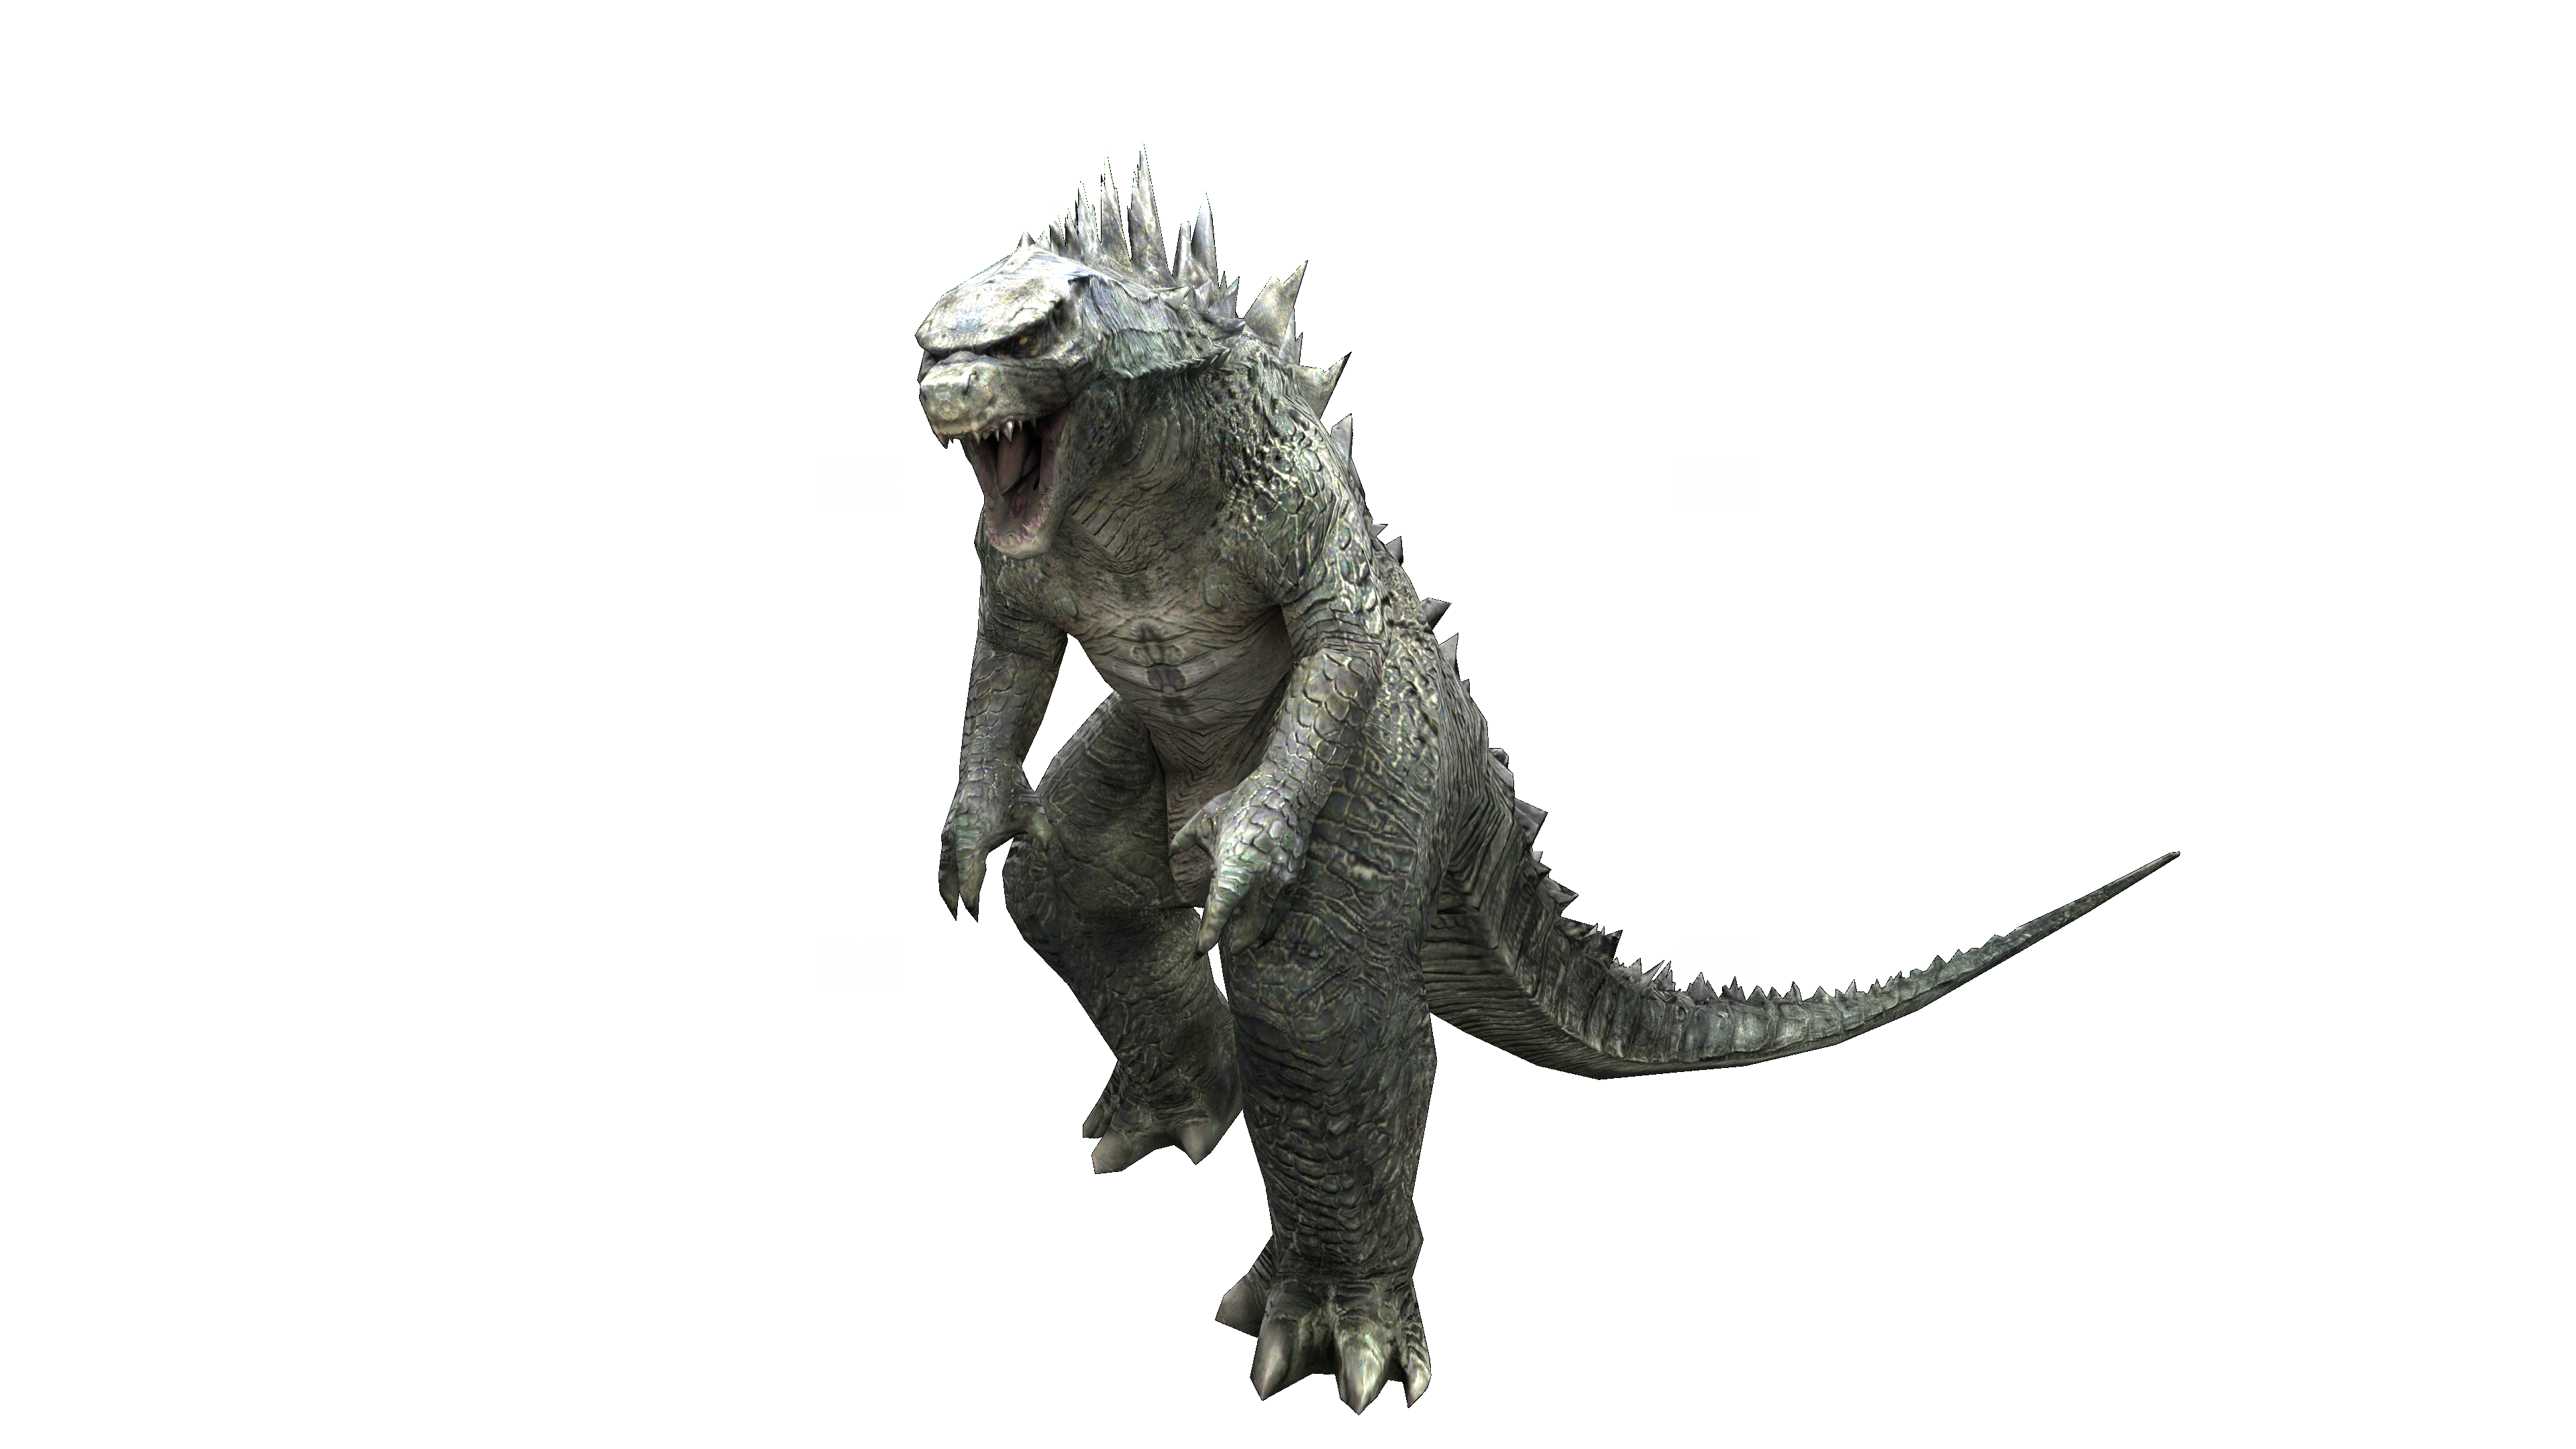 Godzilla breathing fire png. Transparent images all image